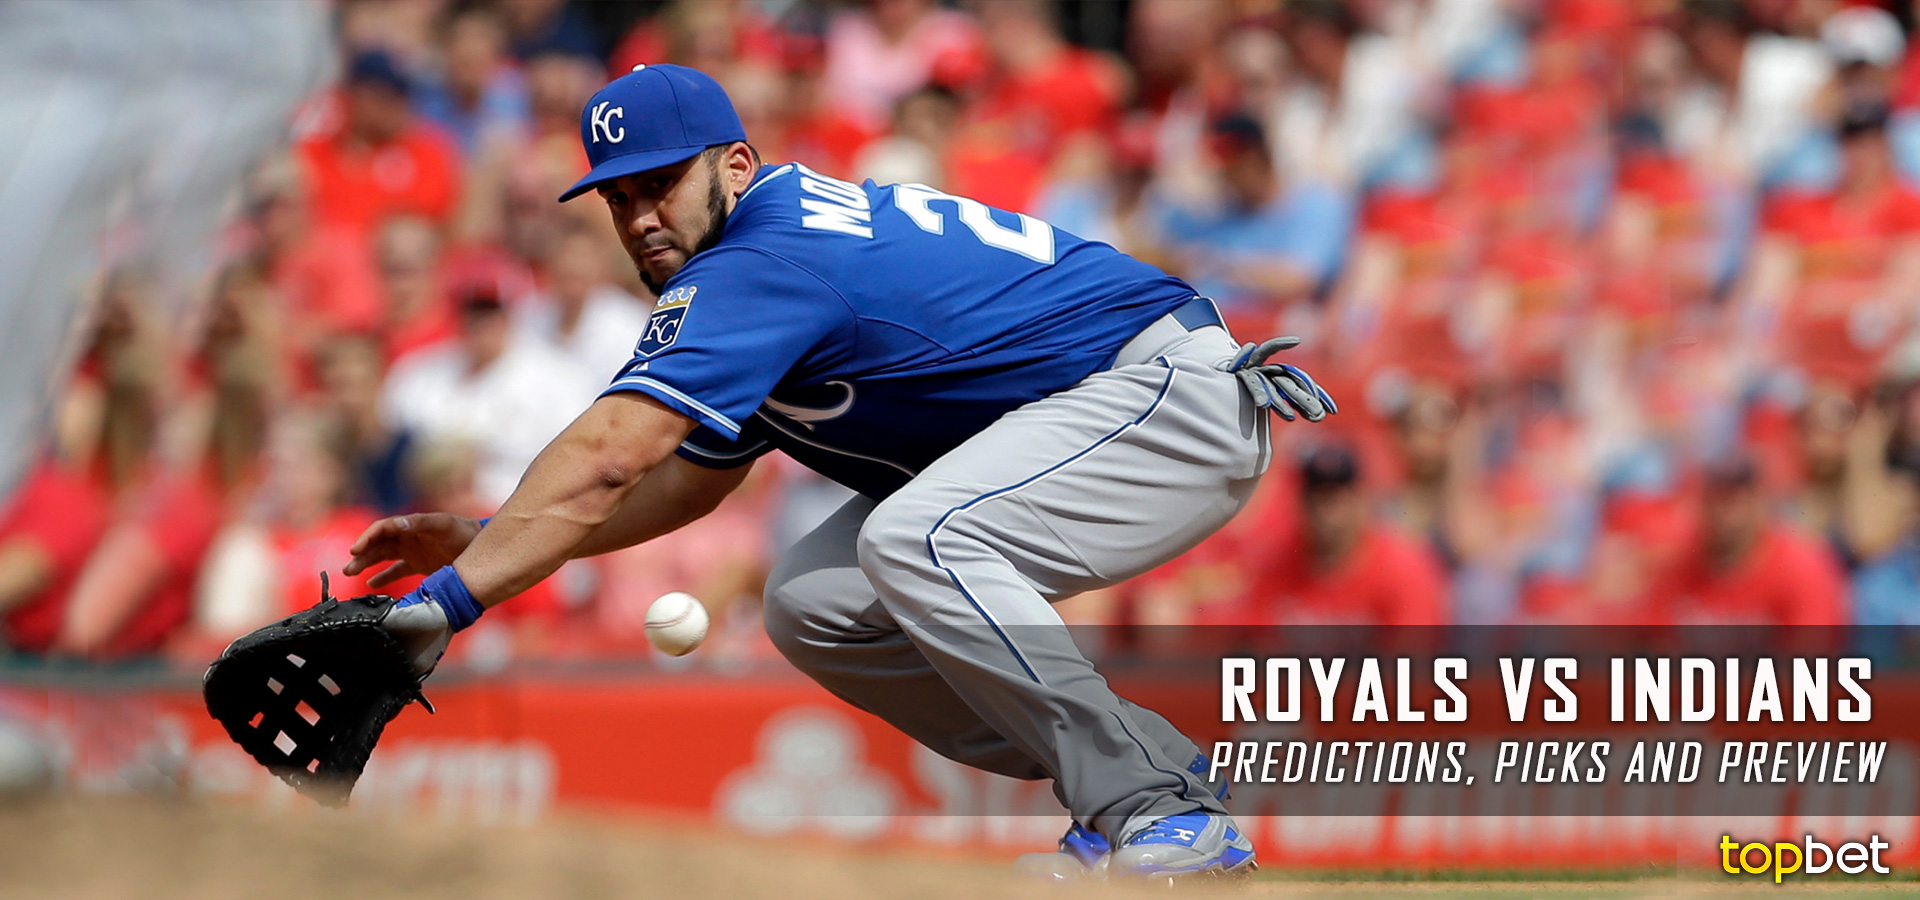 royals vs indians predictions and picks september 22 2016